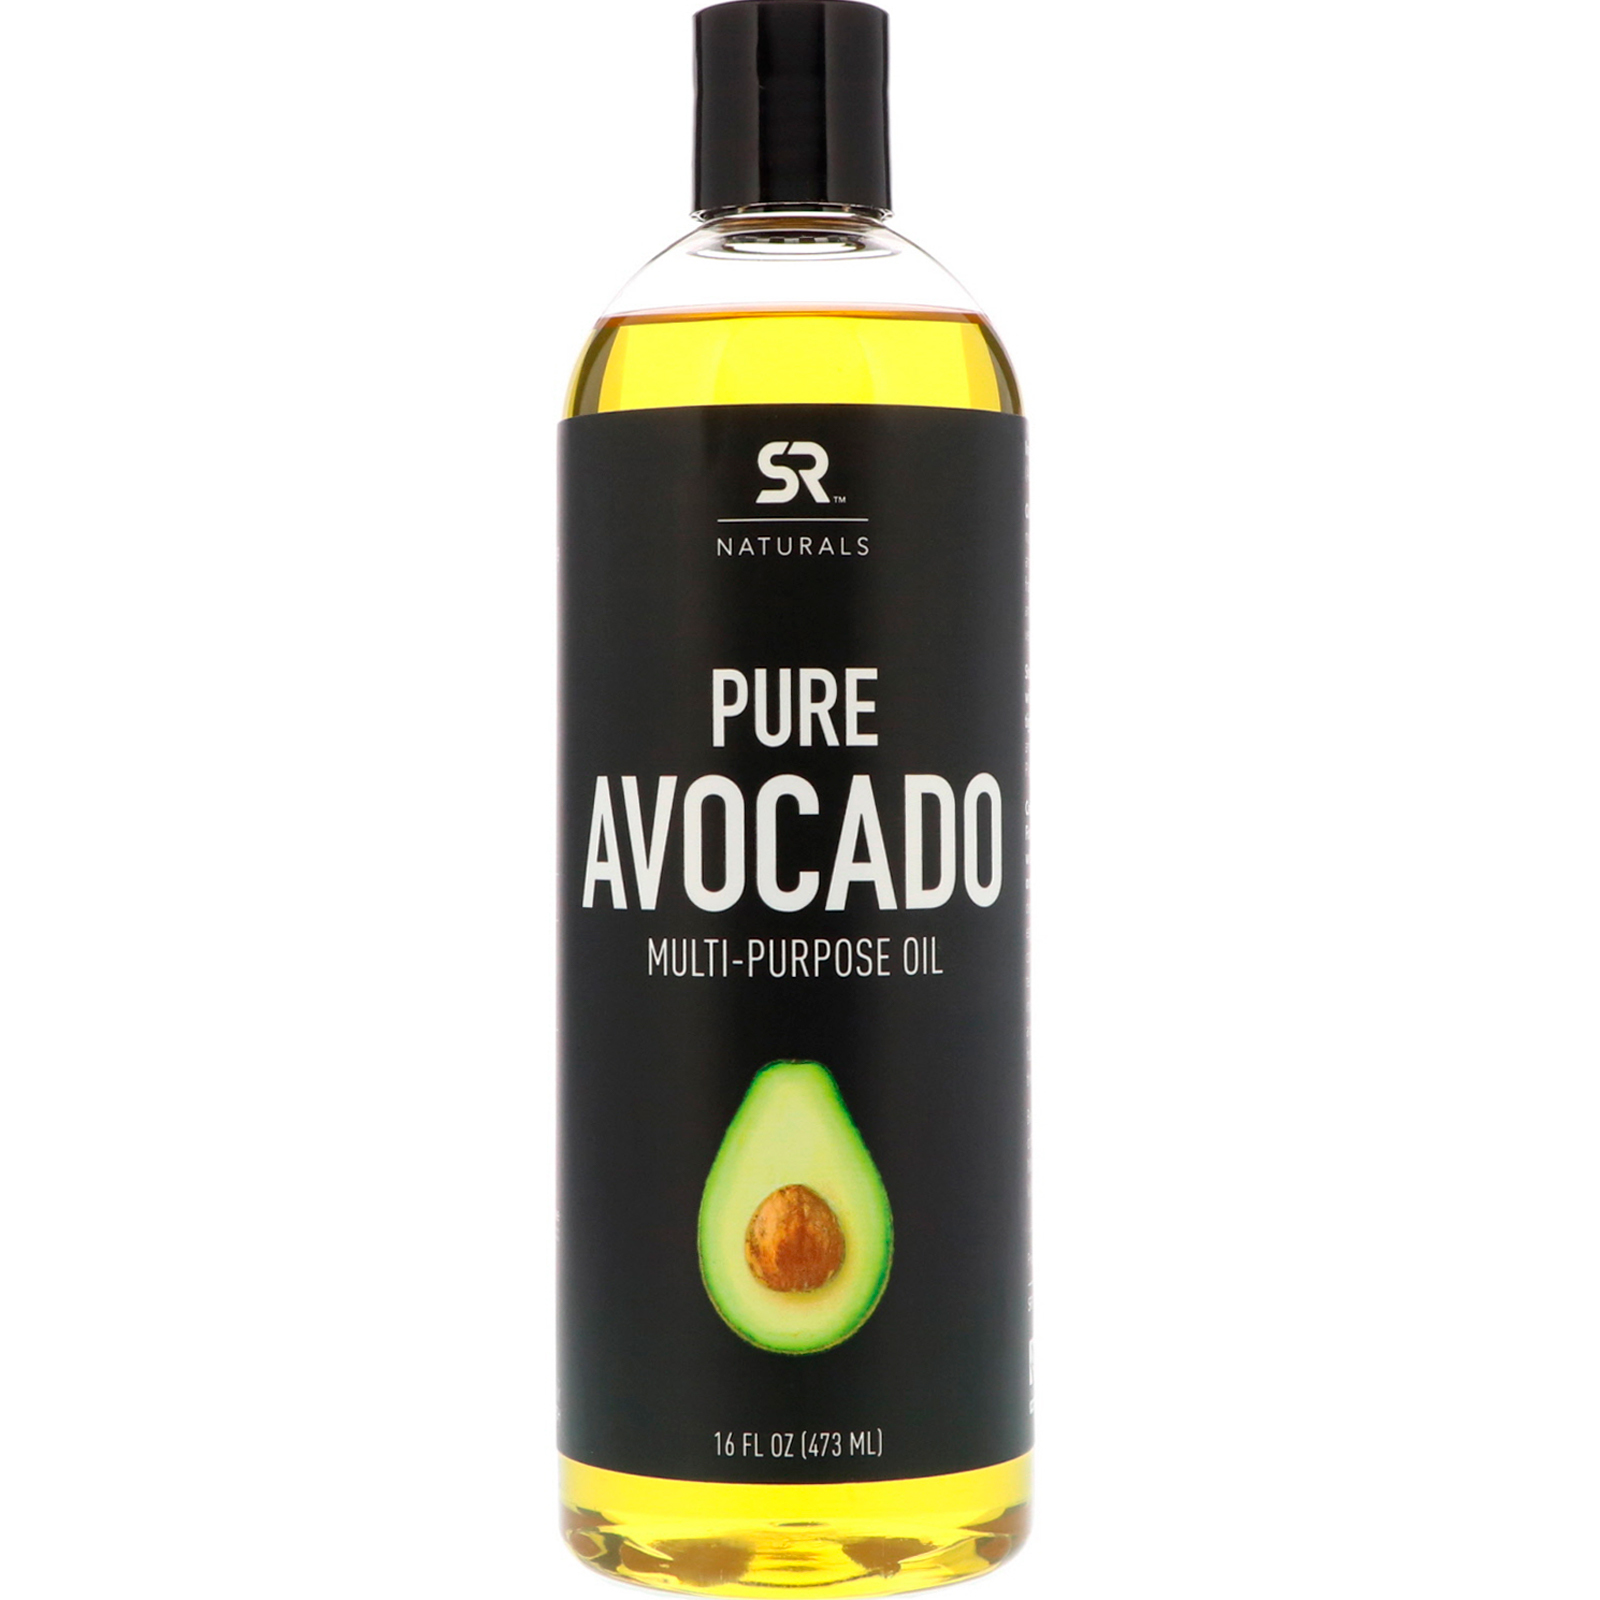 Sports-Research-Pure-Avocado-Multi-Purpose-Oil-16-fl-oz-473-ml-3